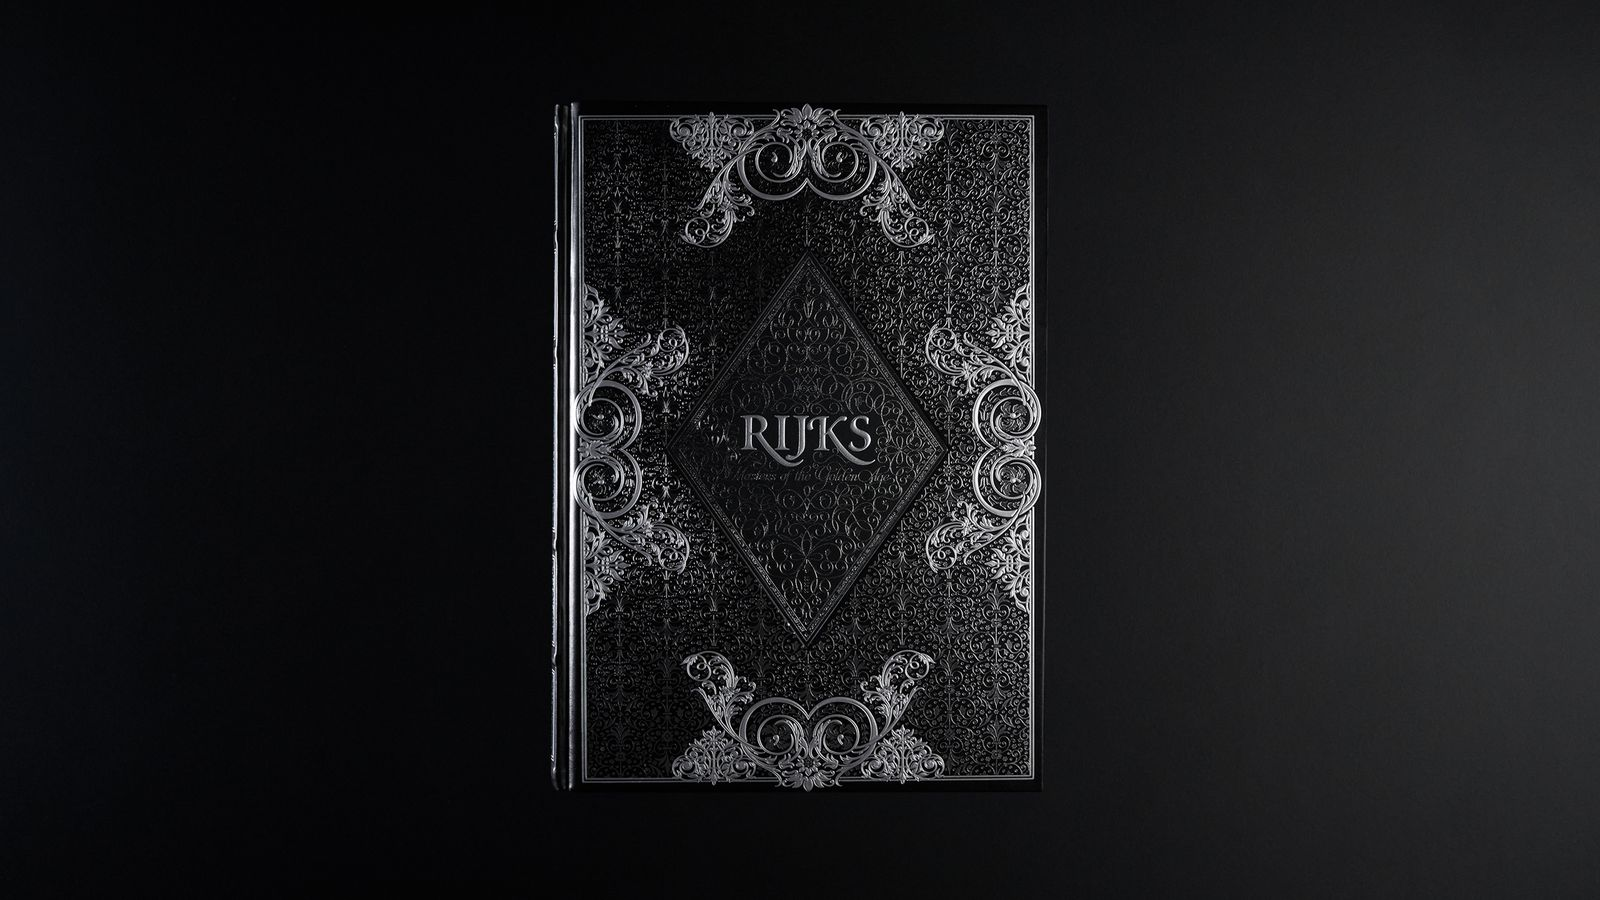 Rijks, Masters of the Golden Age LE - cover.jpg